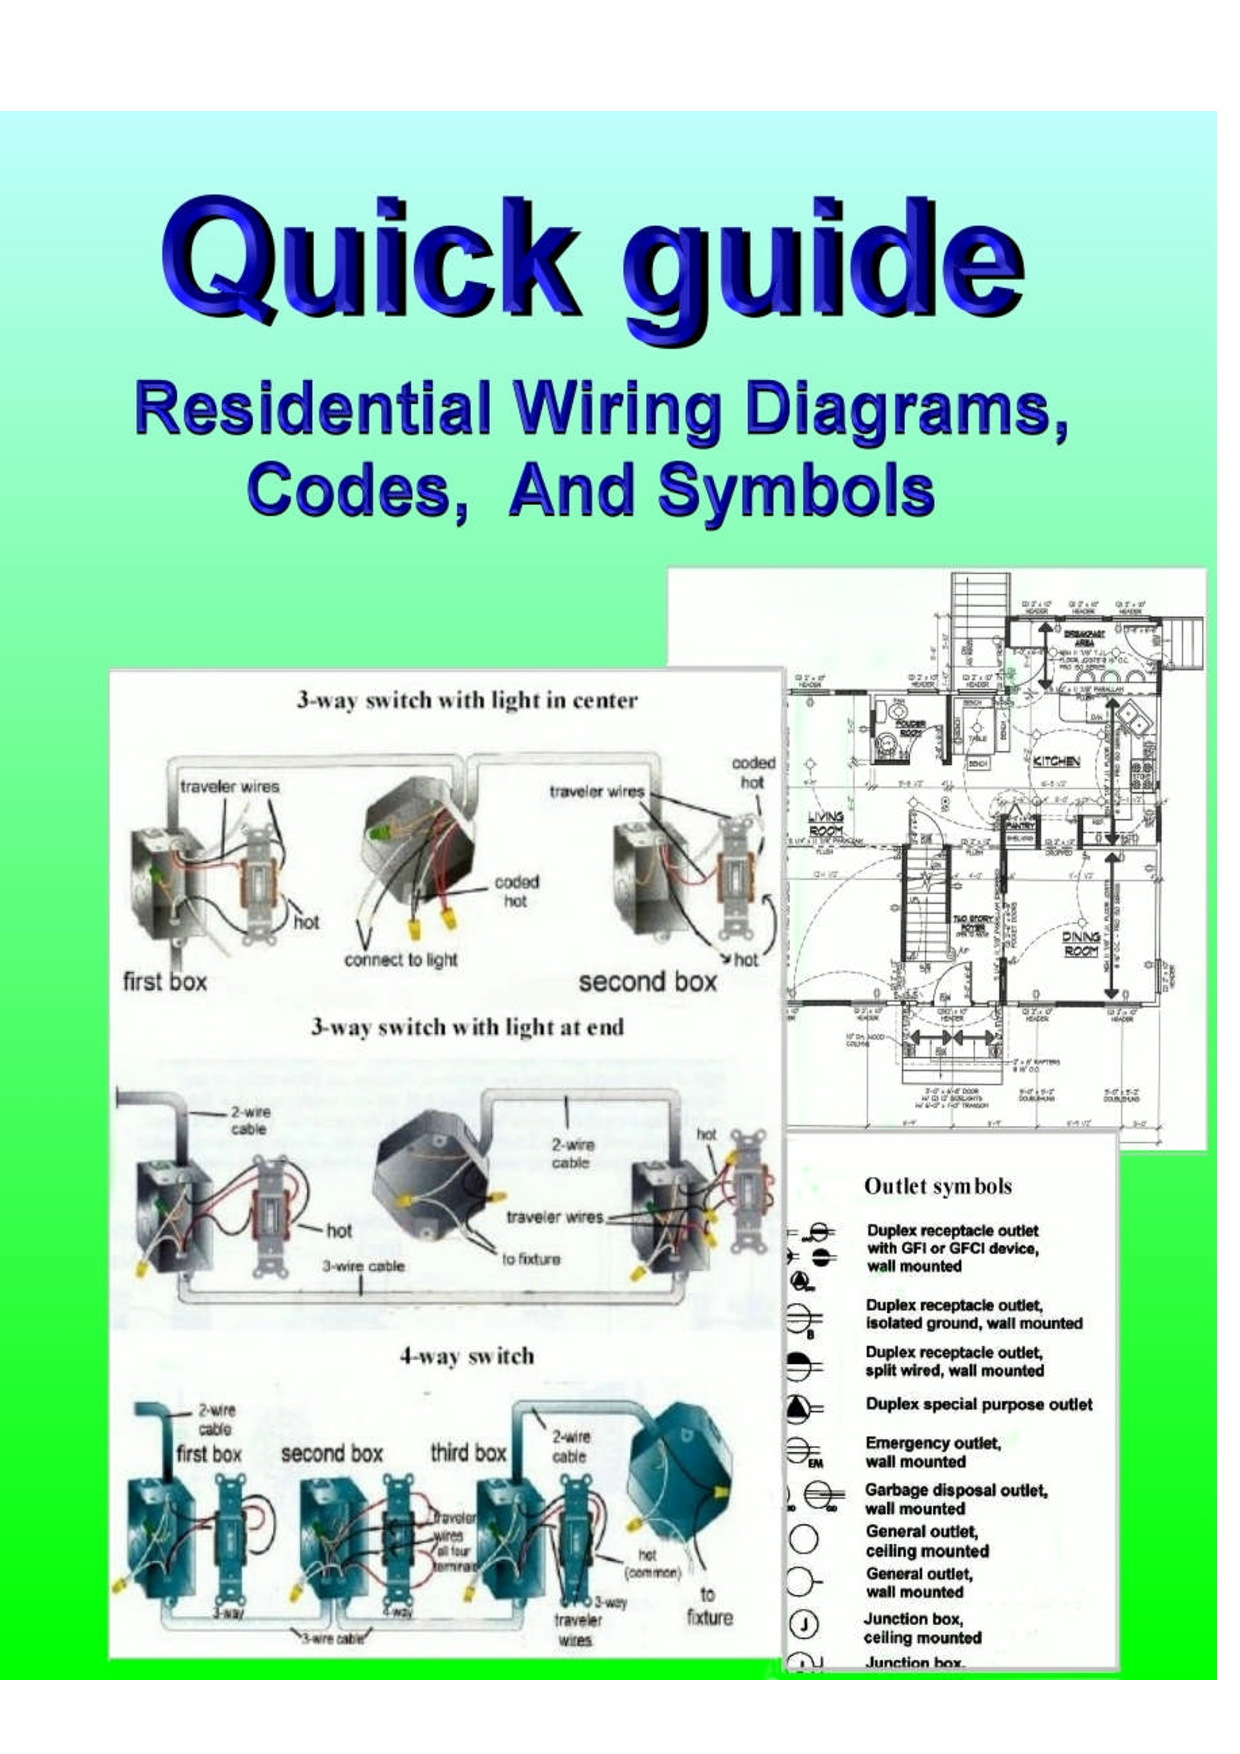 home electrical wiring diagrams pdf download legal documents 39 rh pinterest com electrical wiring in steel framing electrical wiring in siding